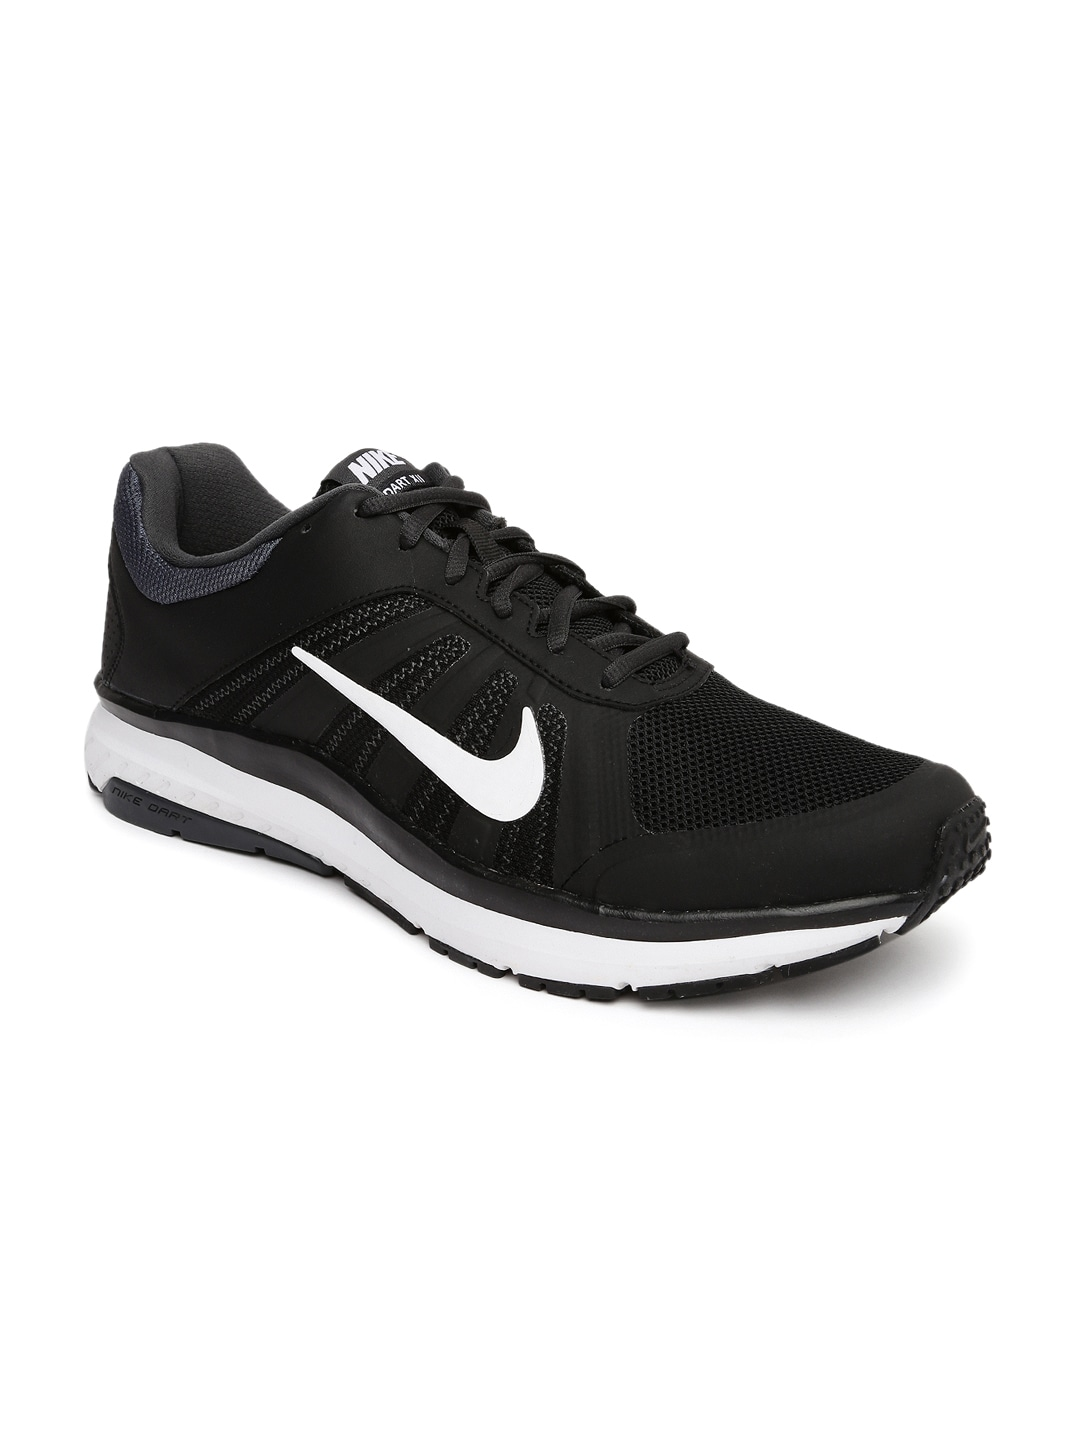 ae309242261b67 Nike Black Shoes - Buy Nike Black Shoes Online in India